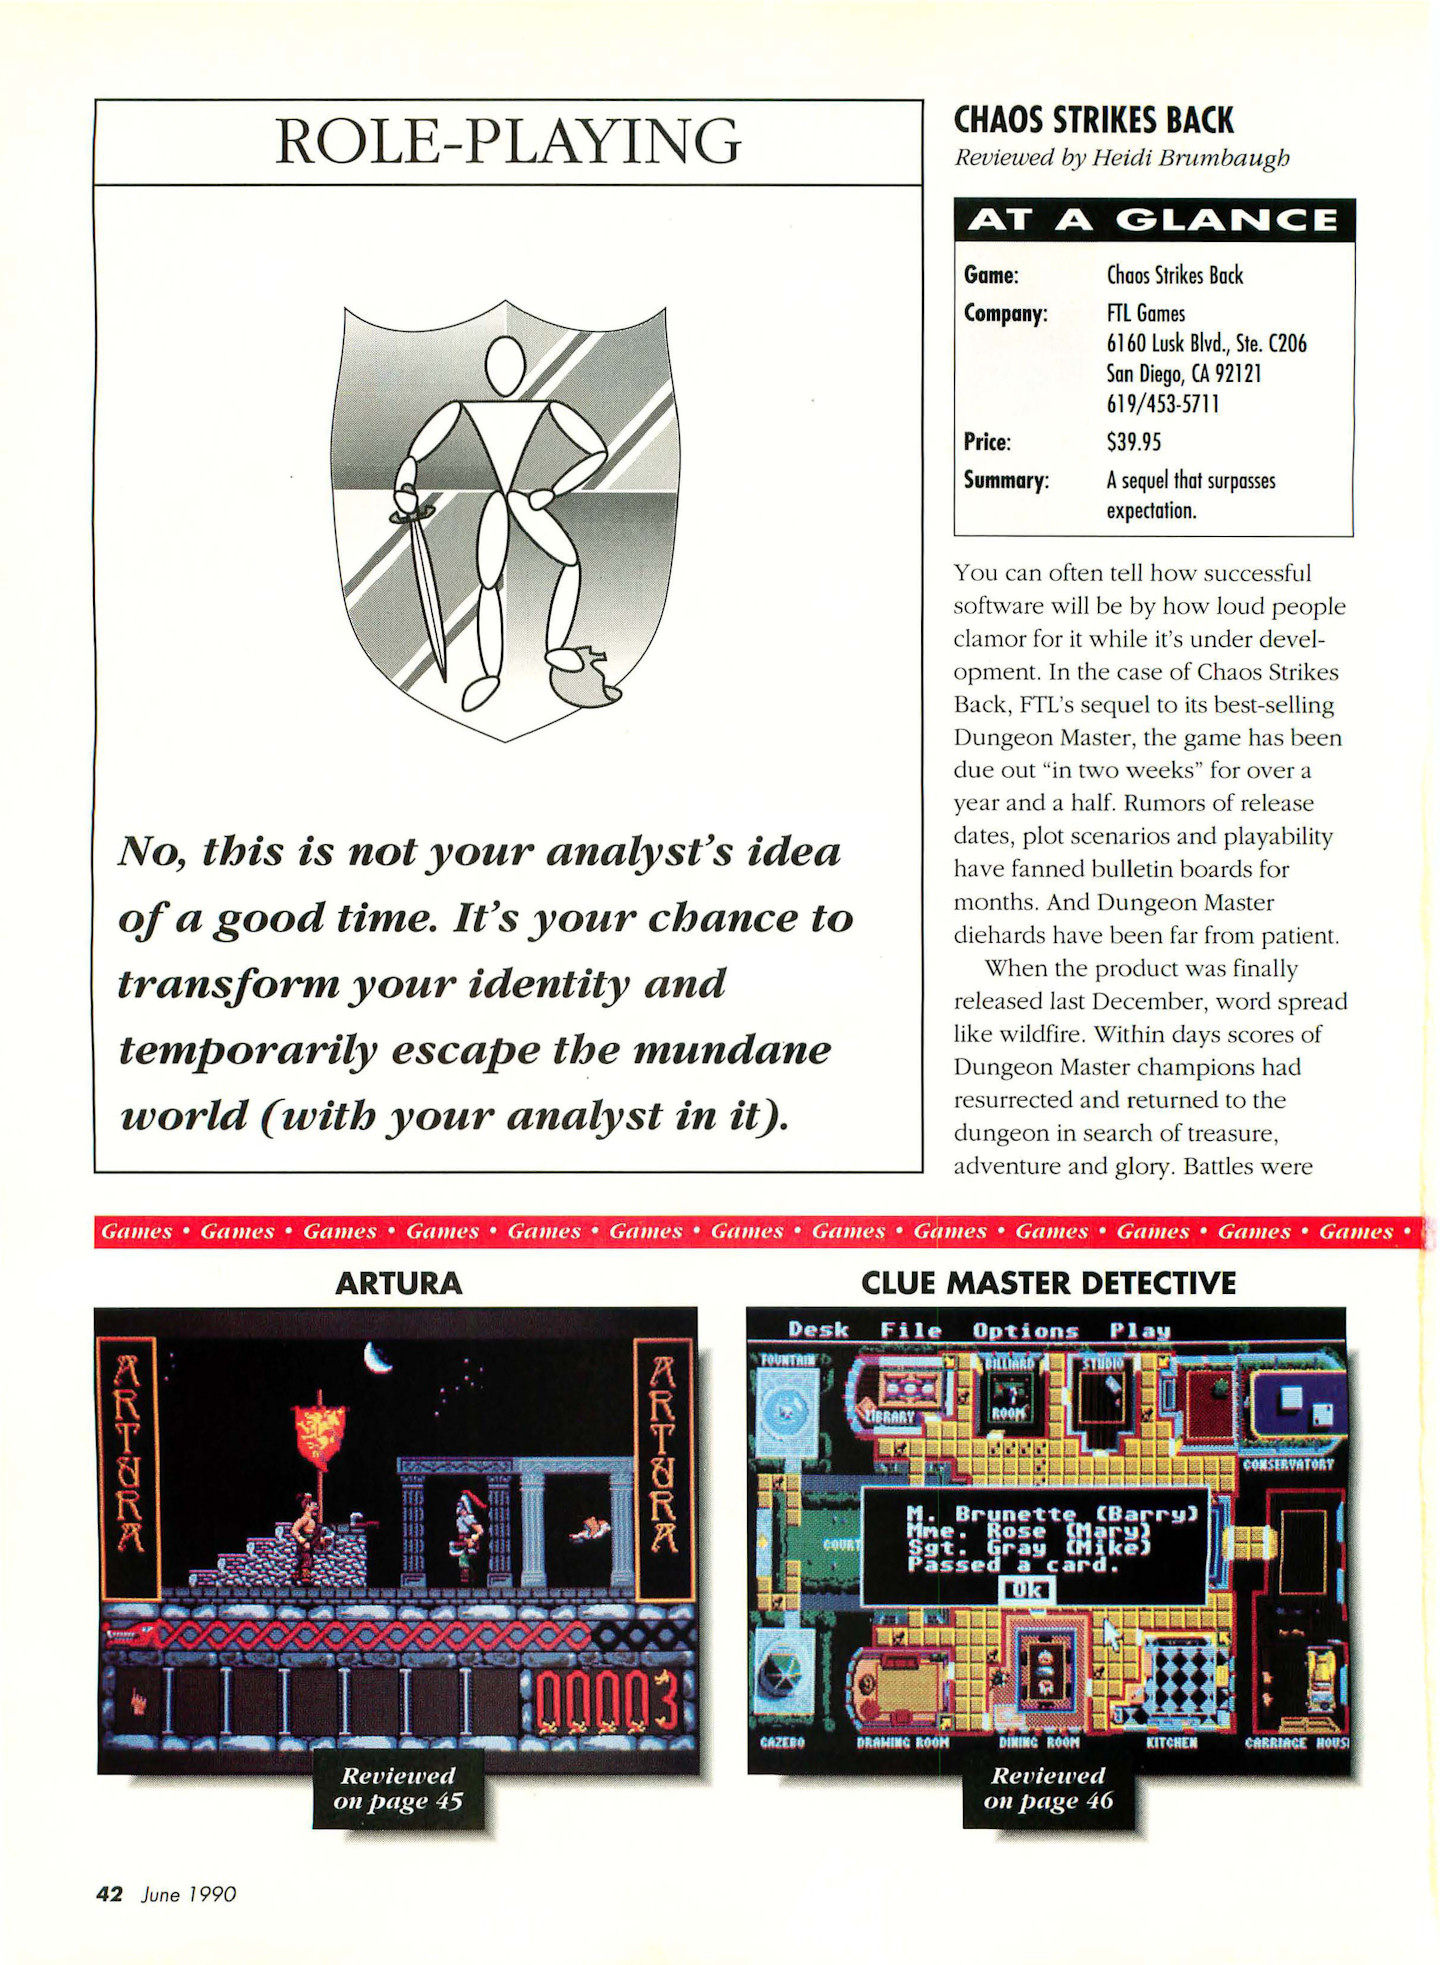 Chaos Strikes Back for Atari ST Review published in American magazine 'Start', Vol 4 No 11 June 1990, Page 42